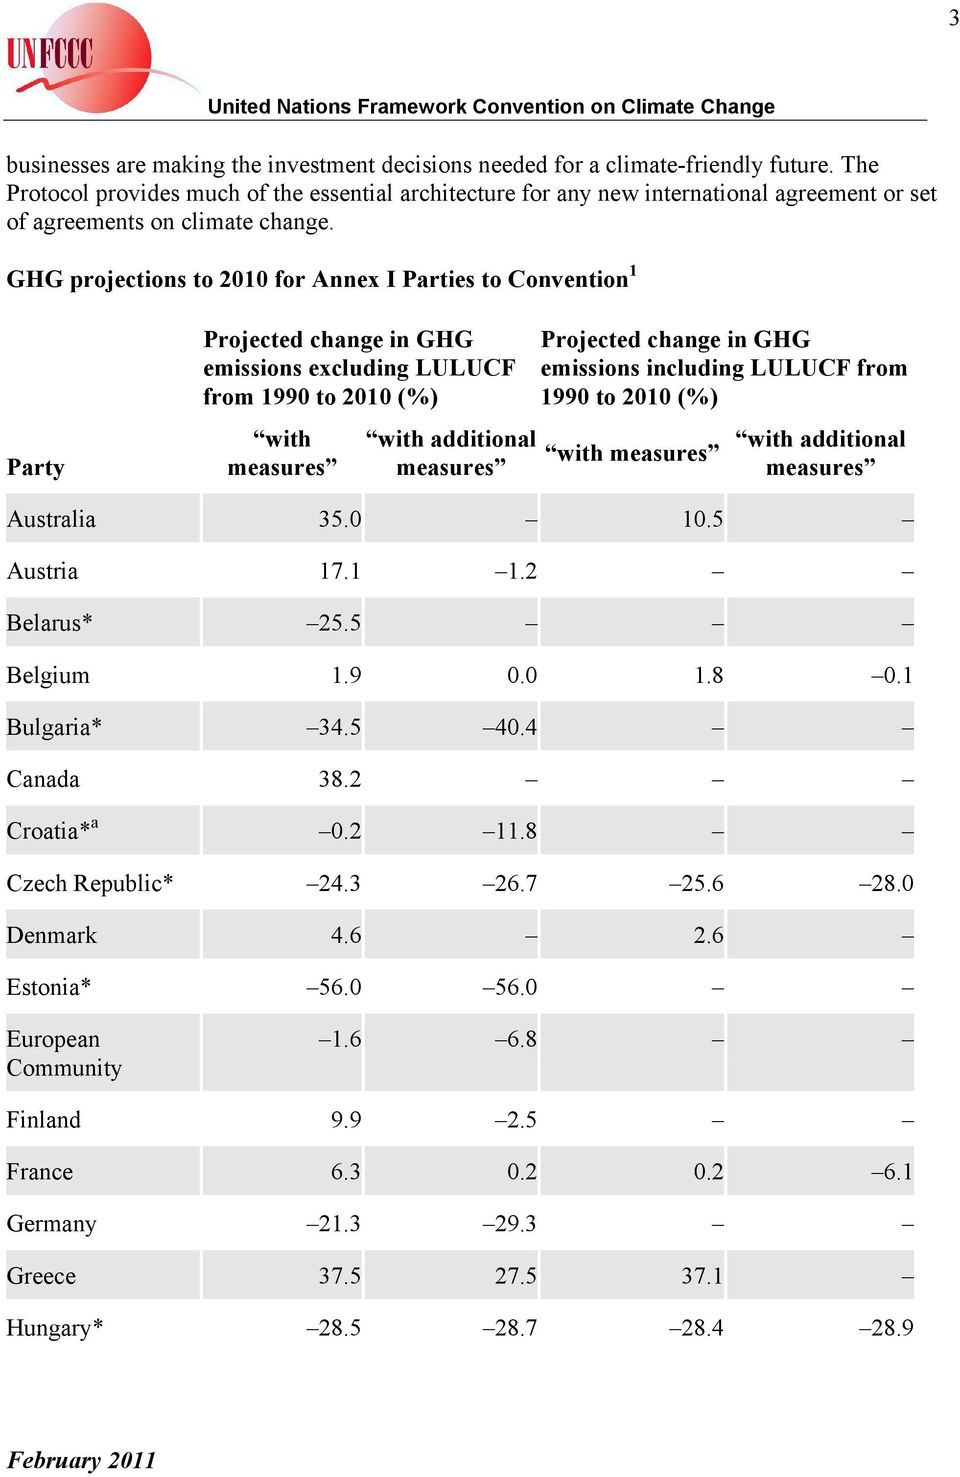 GHG projections to 2010 for Annex I Parties to Convention 1 Party Projected change in GHG emissions excluding LULUCF from 1990 to 2010 (%) with measures with additional measures Projected change in